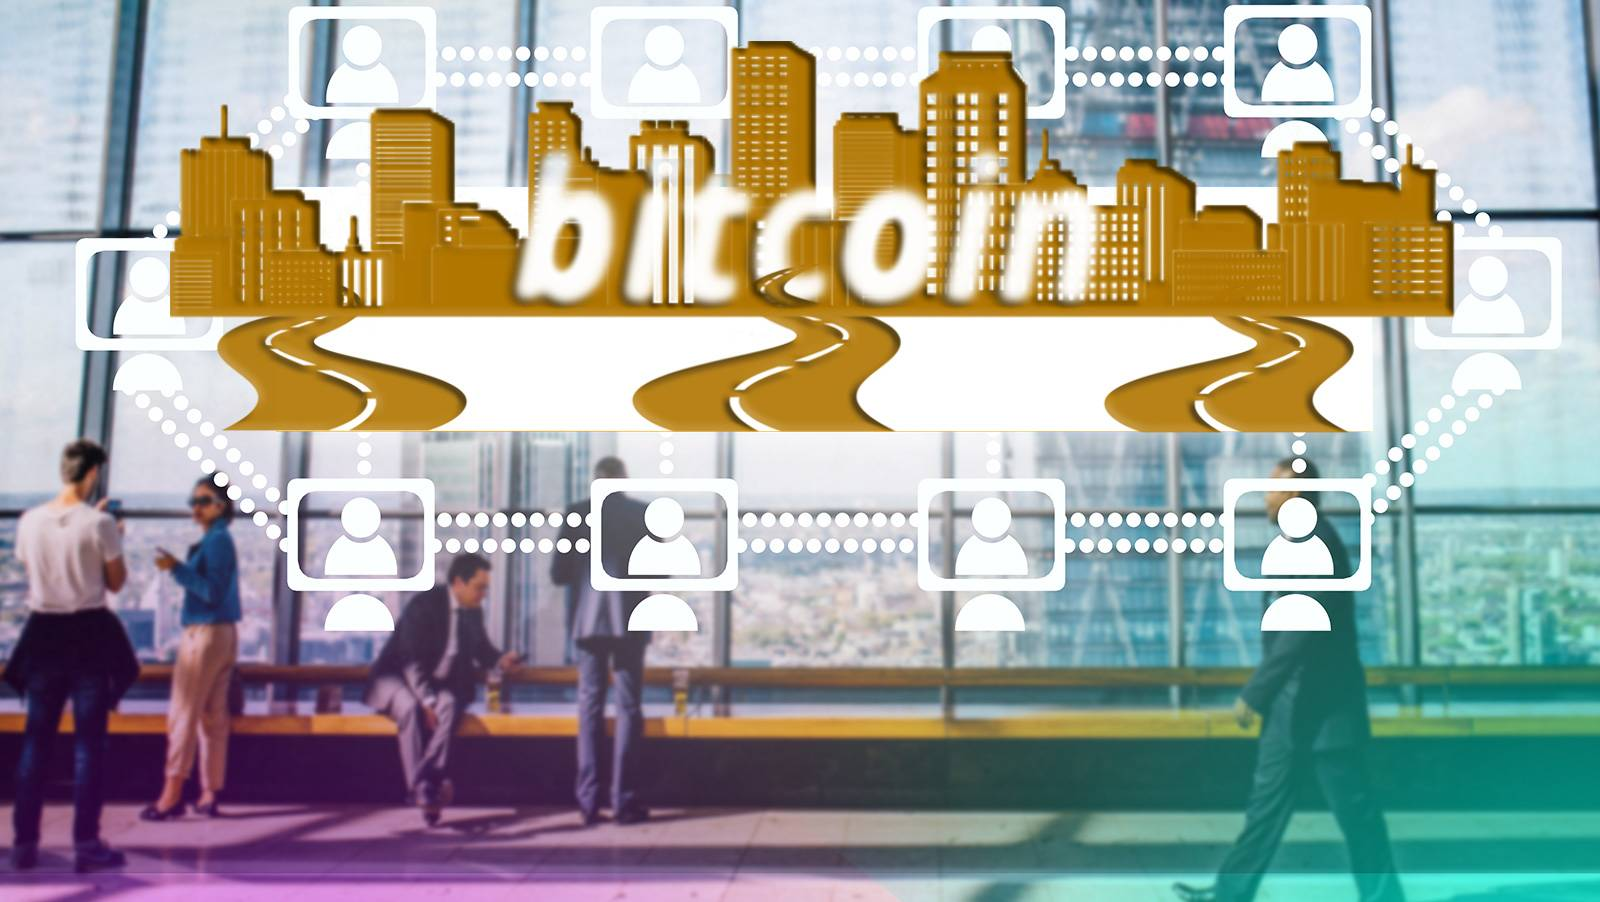 Becky's Affiliated: Where to follow Bitcoin at iGaming industry events with Eric Benz